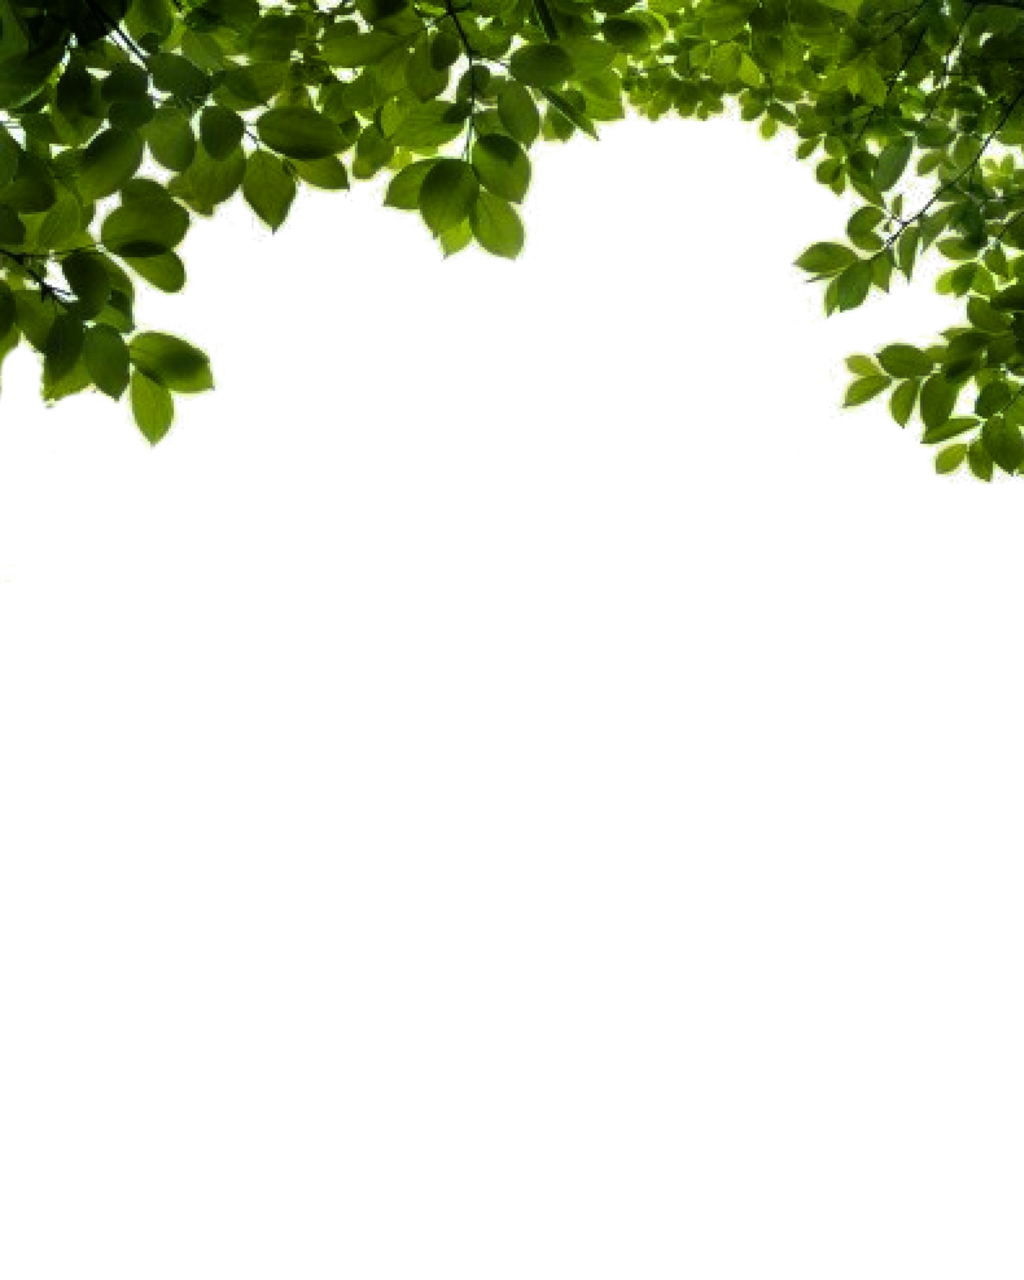 Vines Branch in Plants Png